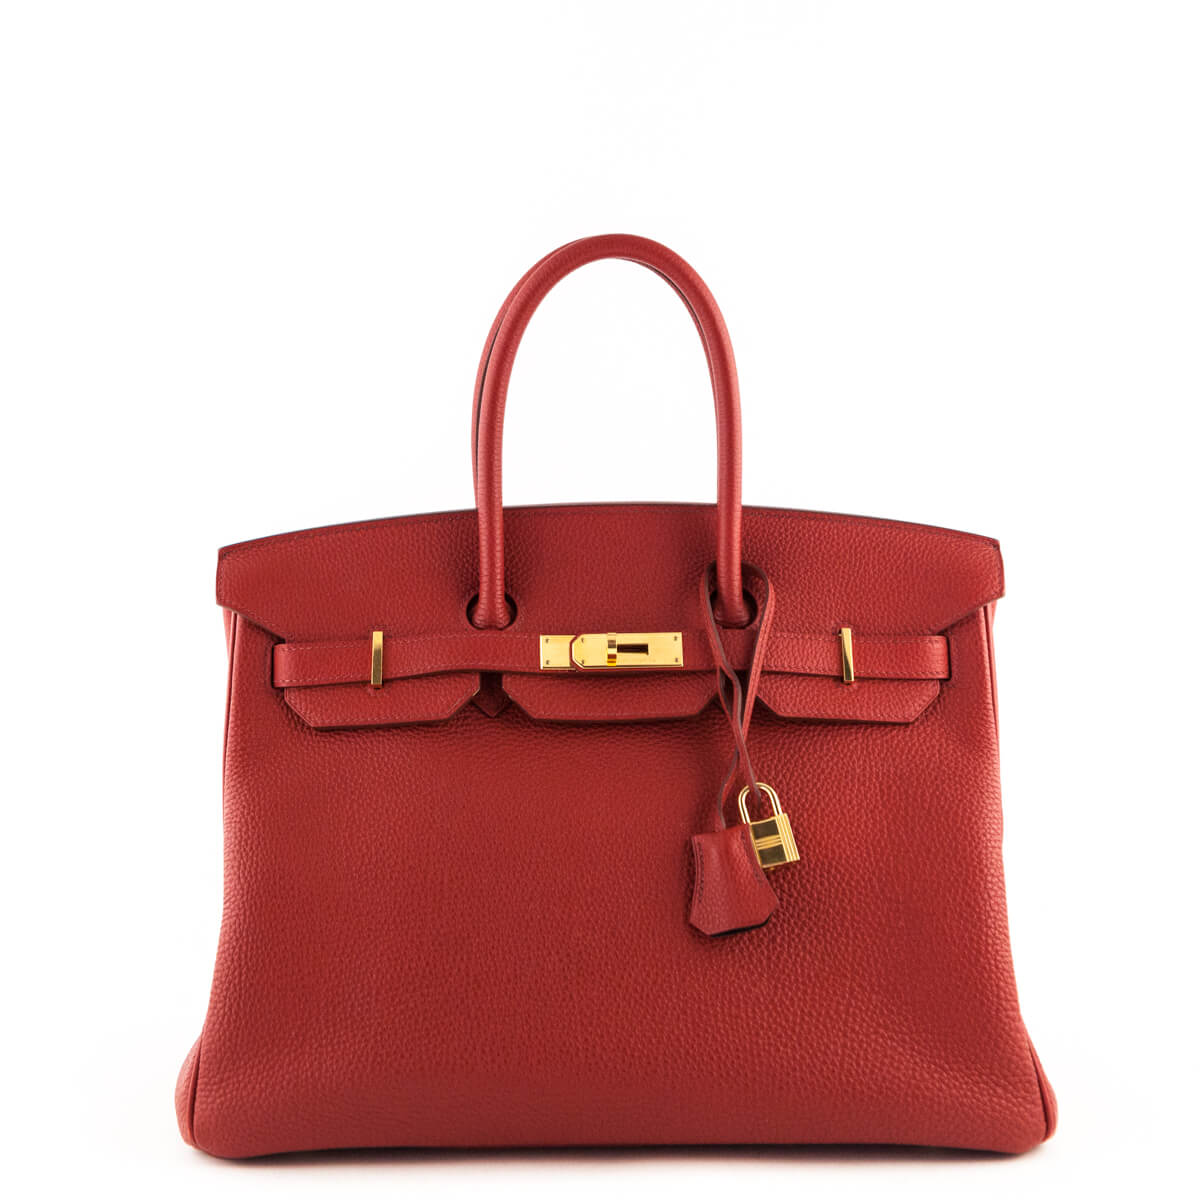 f3e2141a640 Hermes Red Togo Birkin 35 - LOVE that BAG - Preowned Authentic Designer  Handbags ...